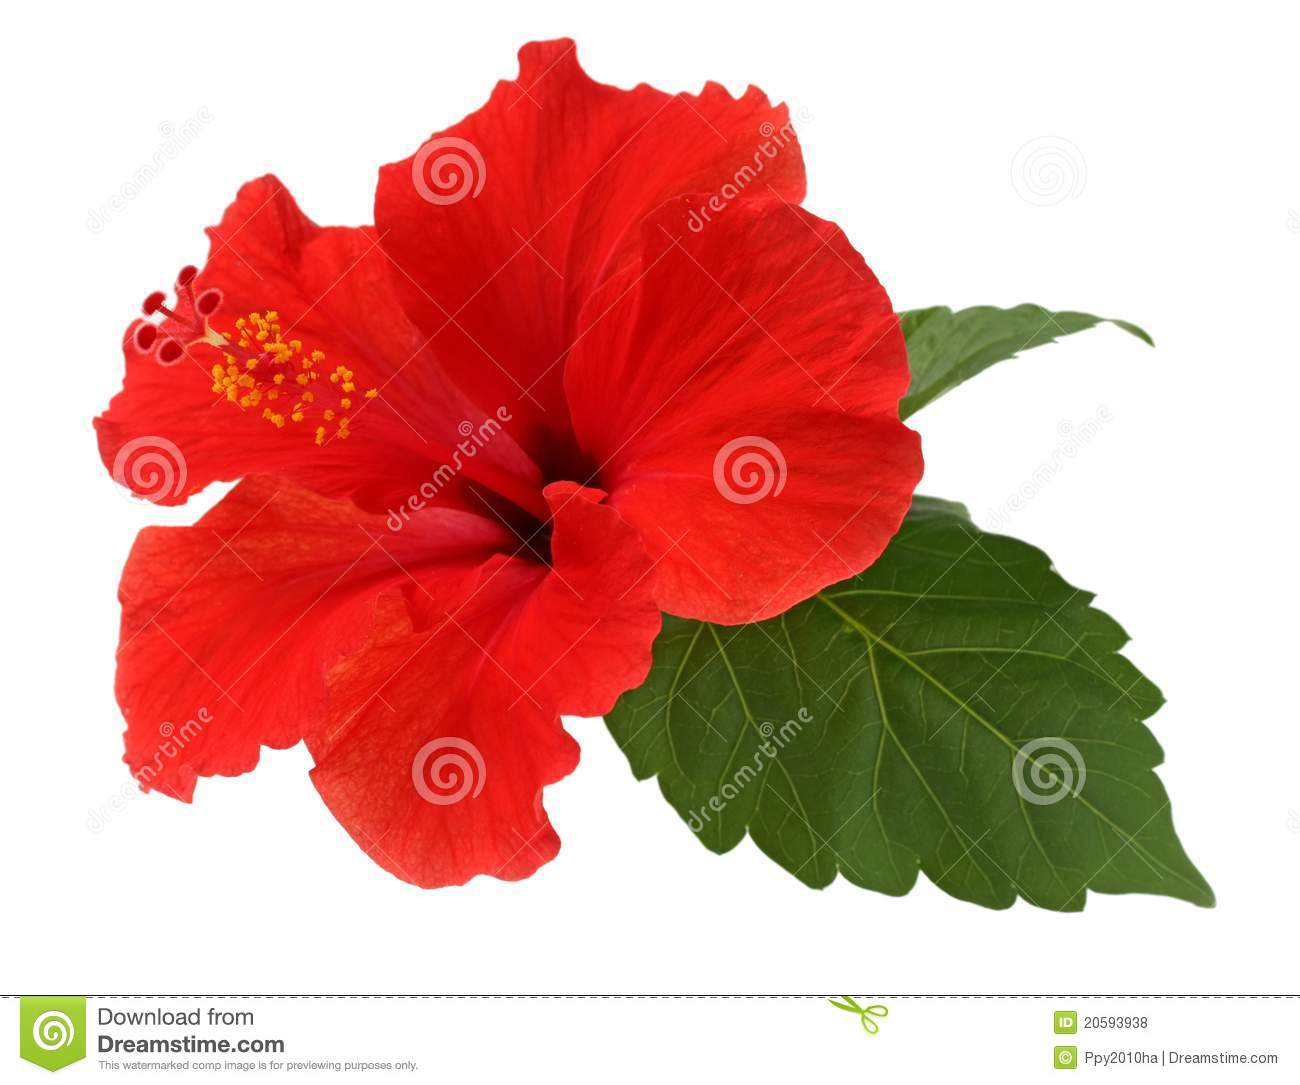 Free pictures of hibiscus flowers graphic black and white download Hibiscus Flower Stock Photos, Images, & Pictures - 20,541 Images graphic black and white download